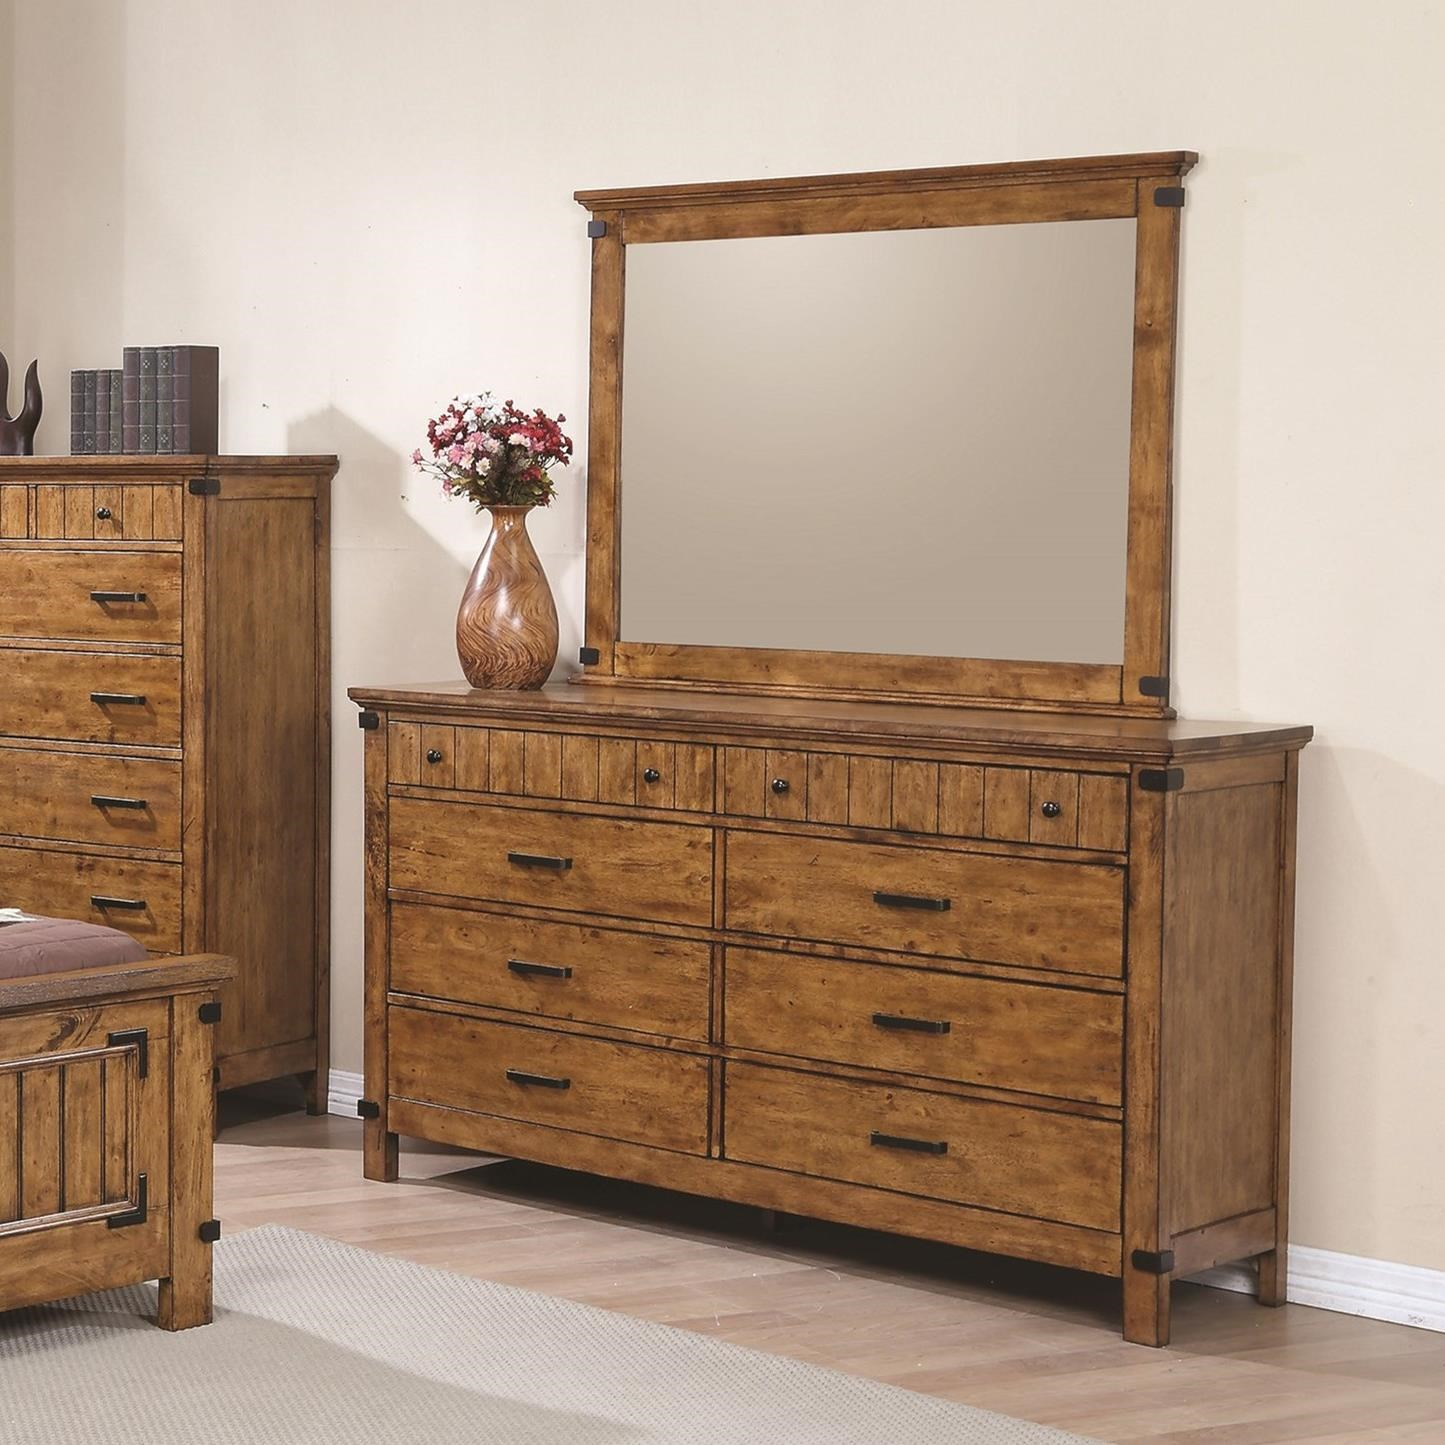 Brenner 8 Drawer Dresser and Mirror by Coaster at Northeast Factory Direct